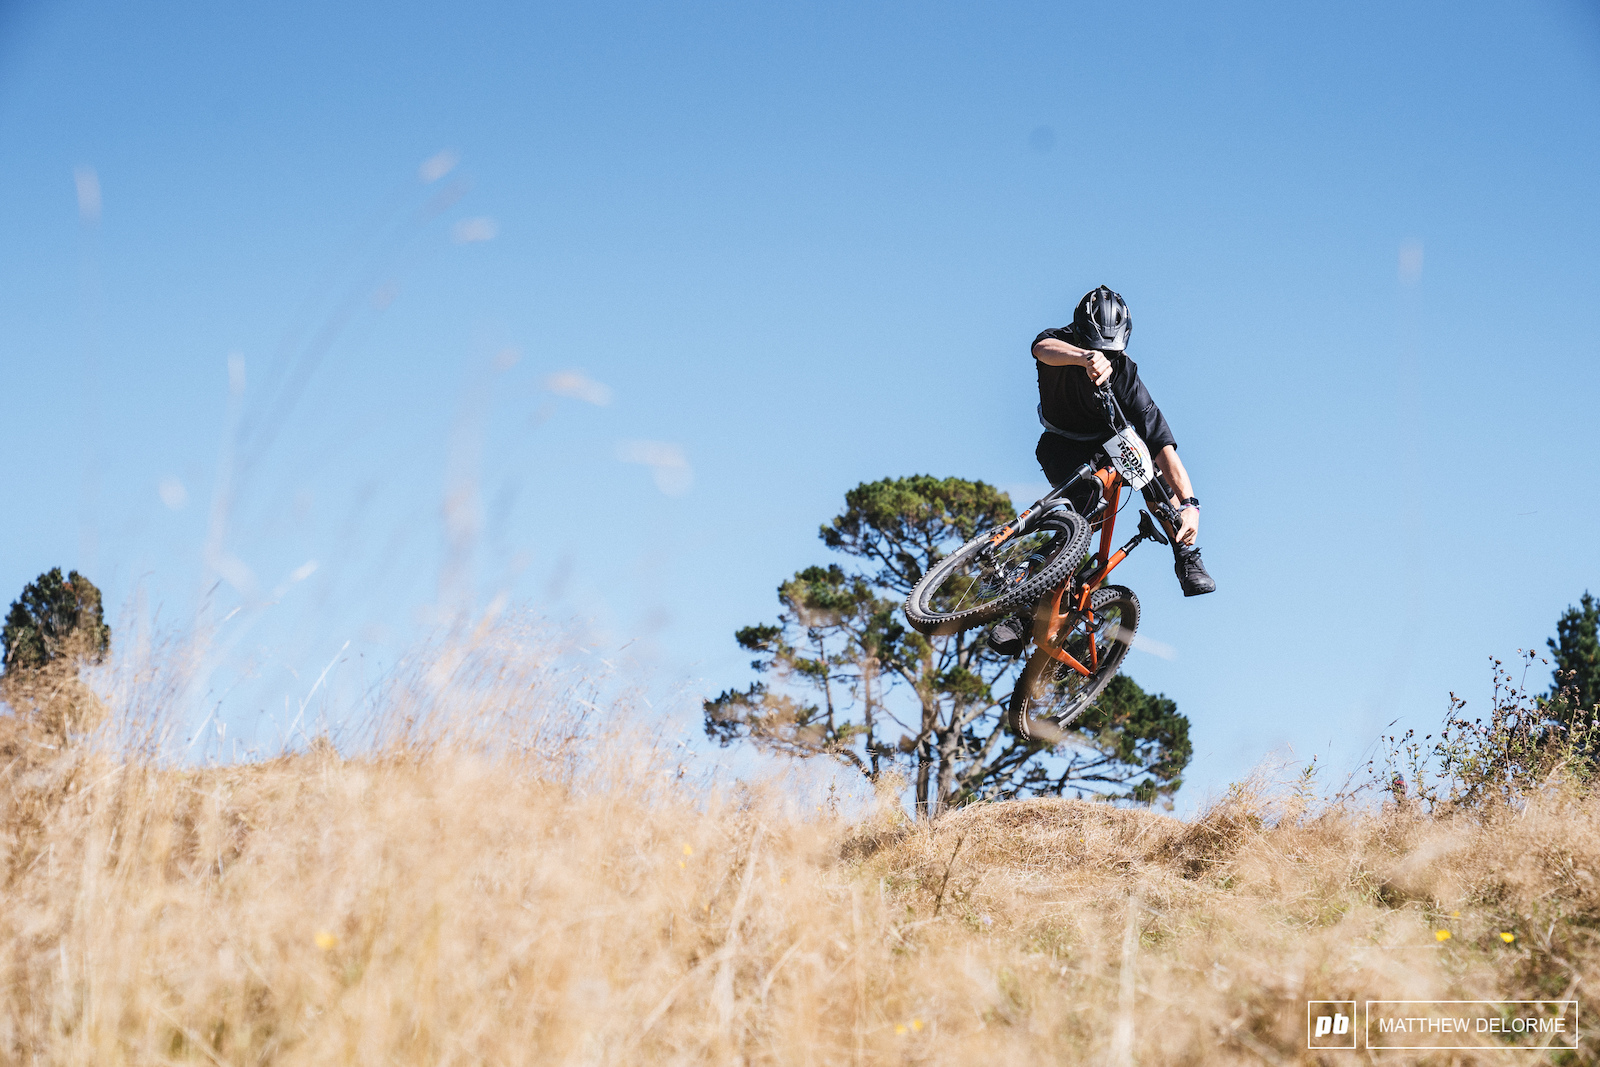 It wouldn t be a media recce without some tricks. Chris Seager shows some style before we drop in.